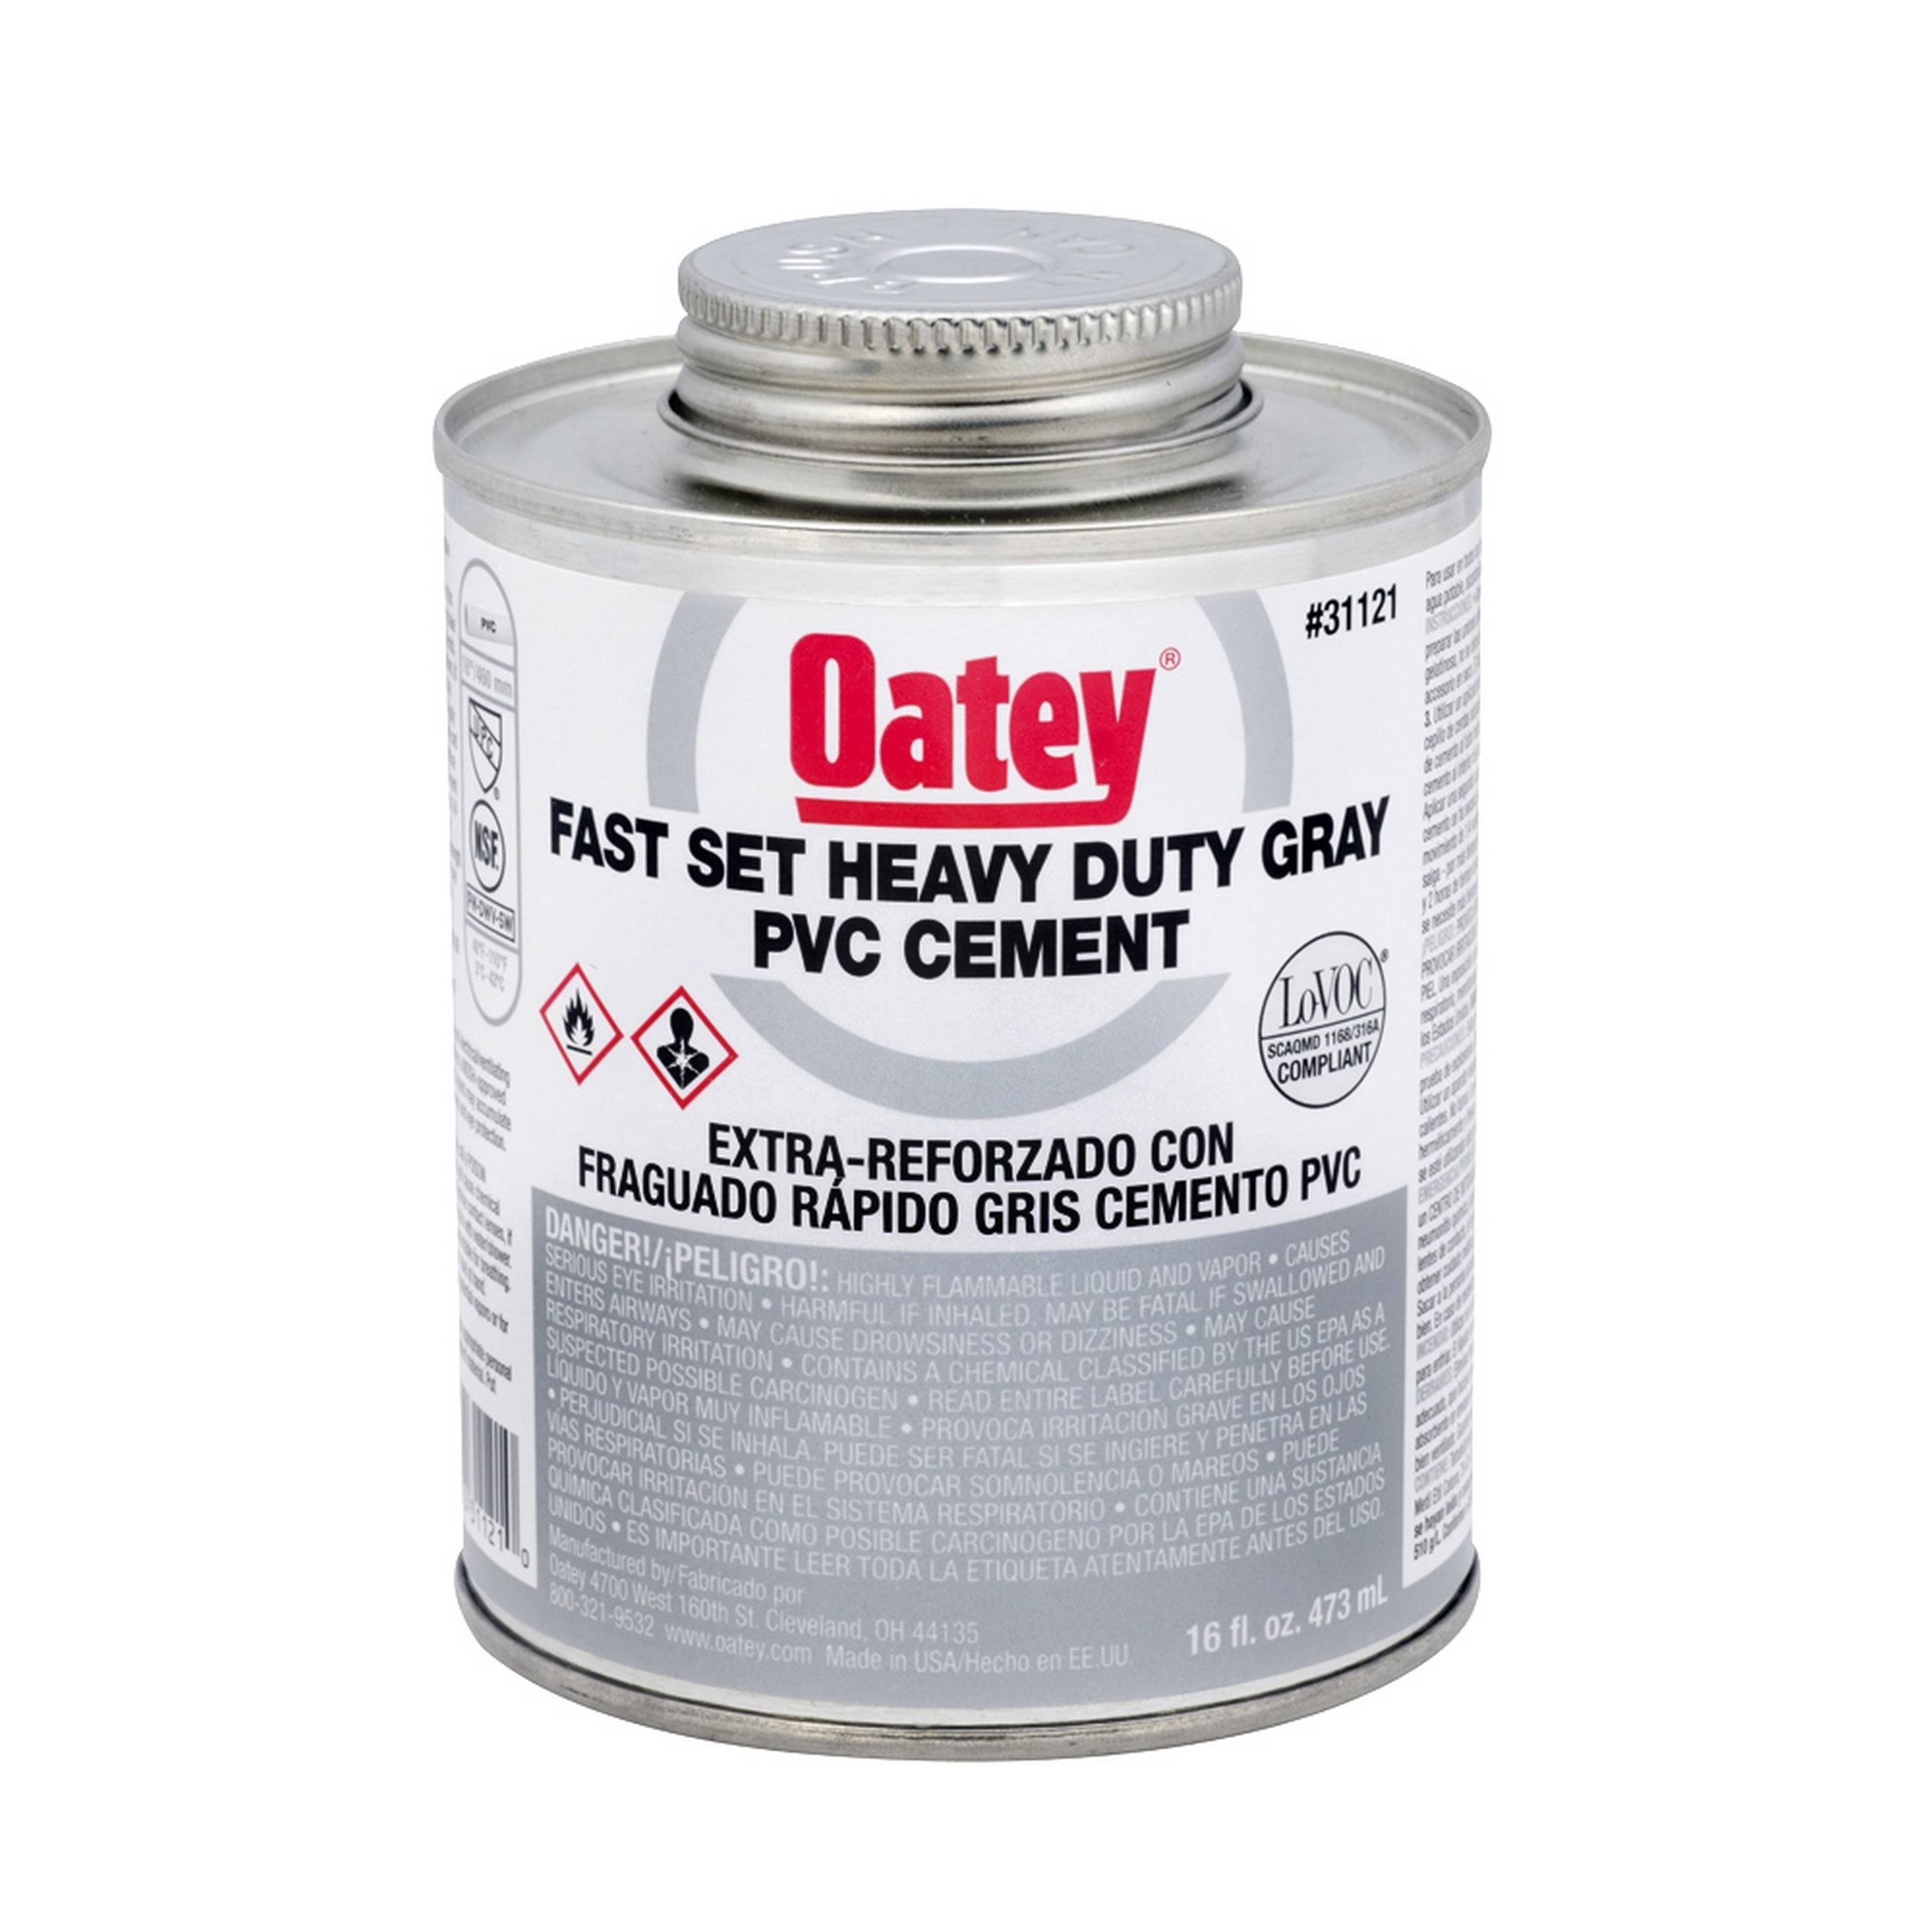 Oatey Heavy-Duty Clear PVC Cement - 32oz